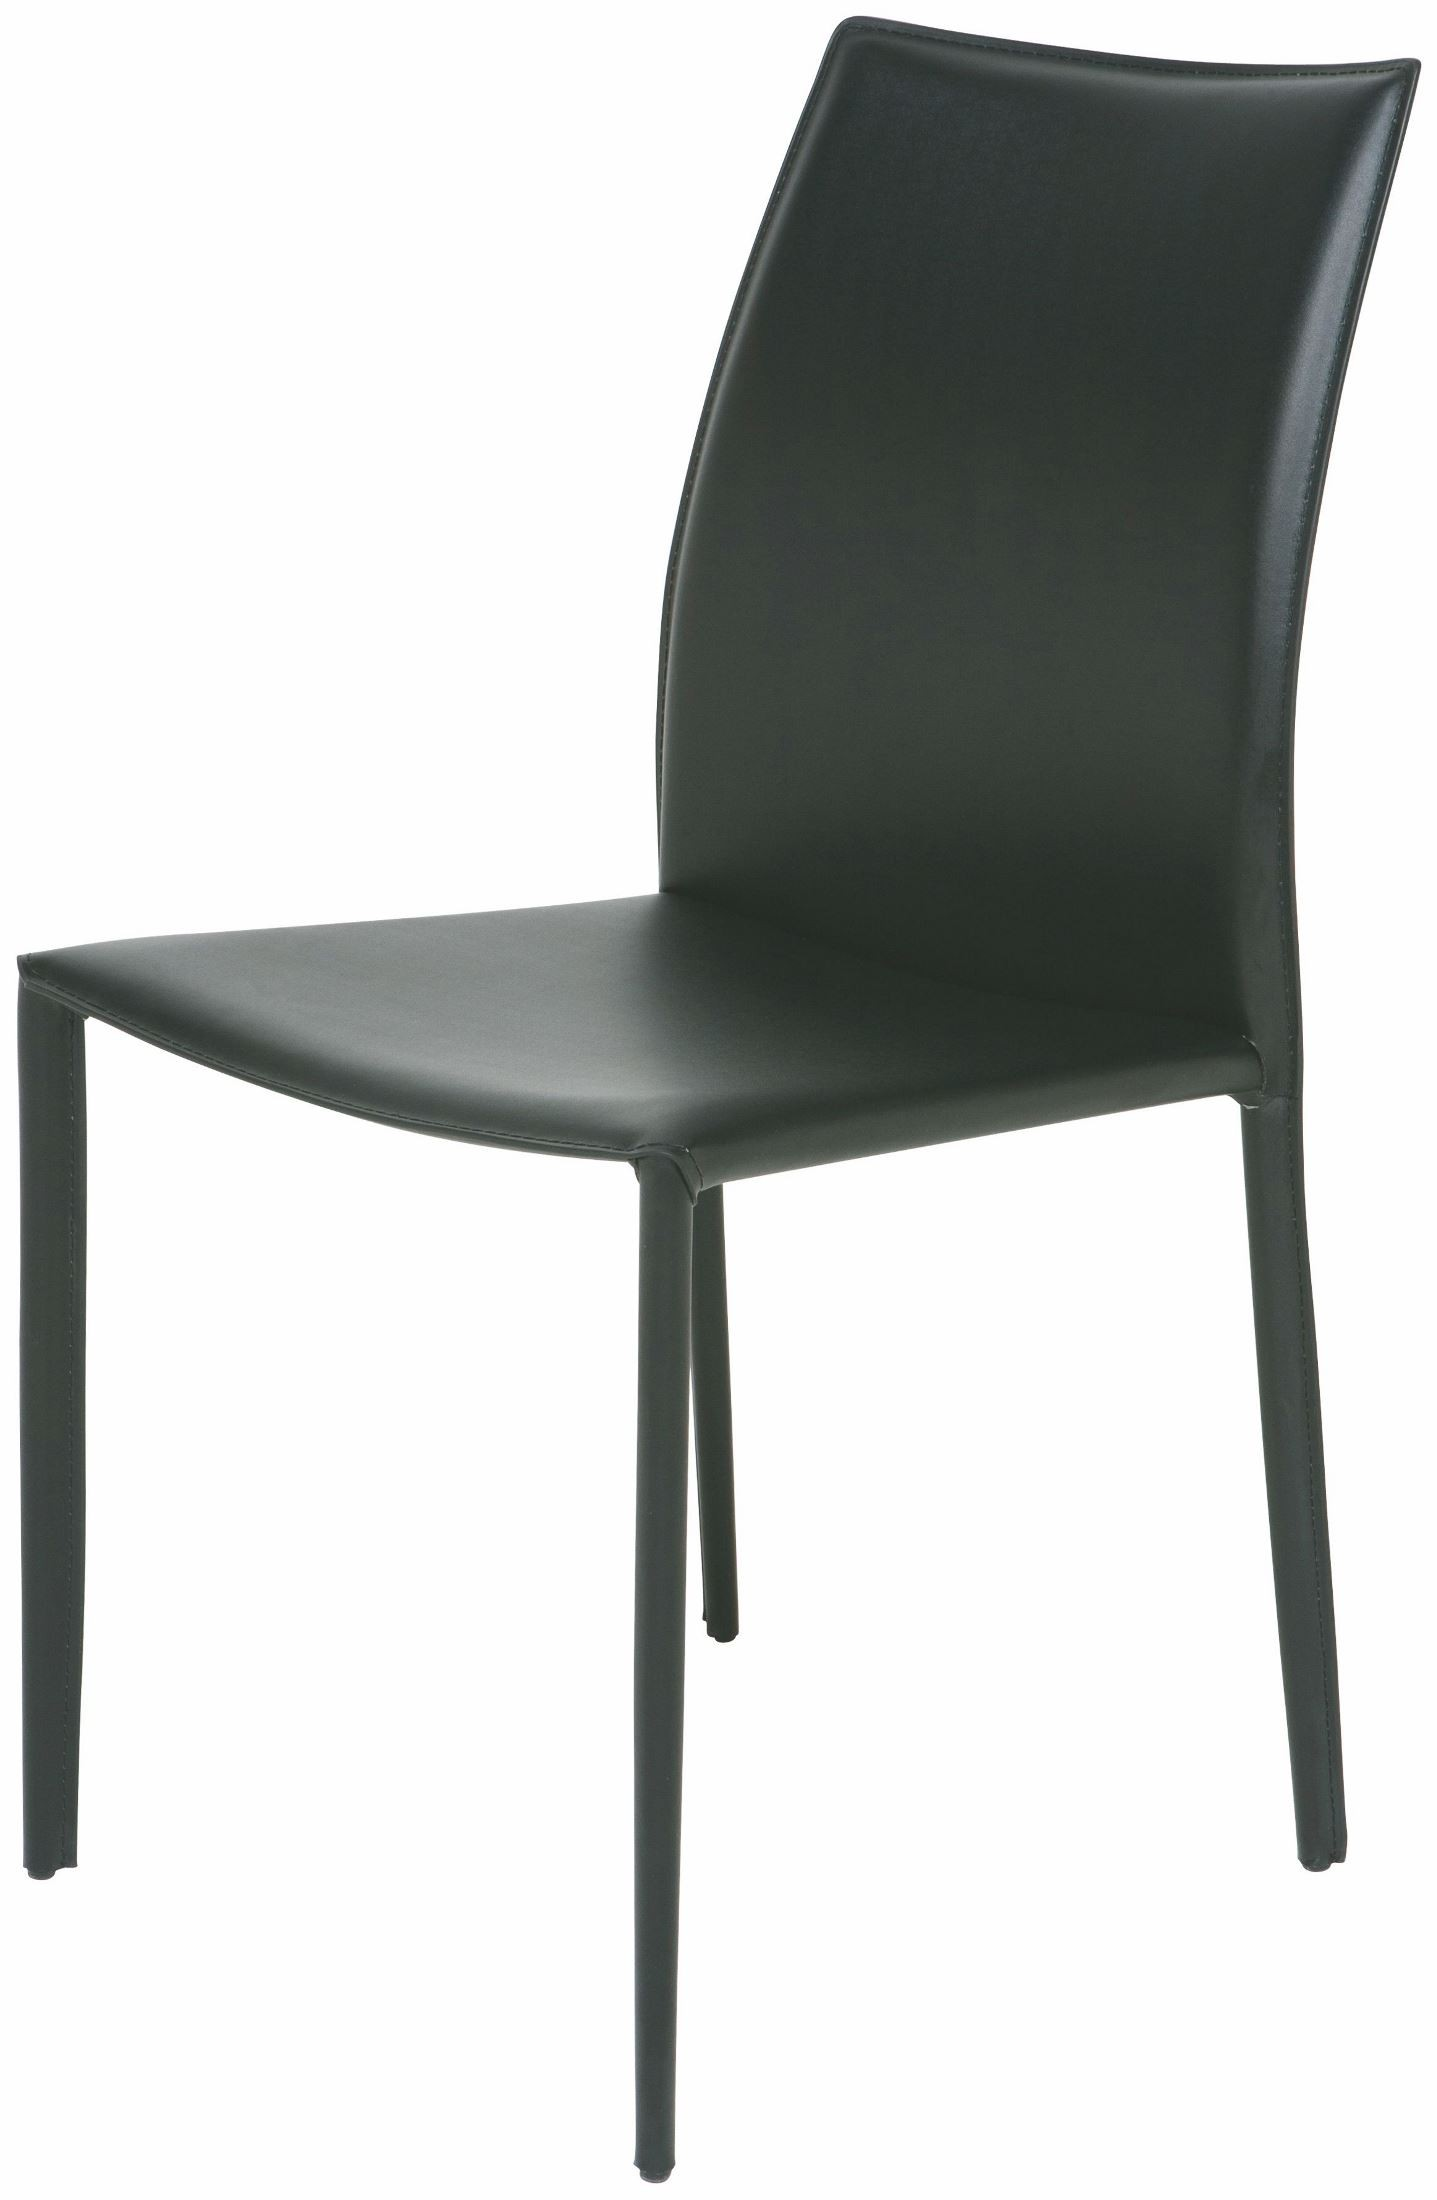 black leather chair dining classroom covers with pocket sienna from nuevo coleman